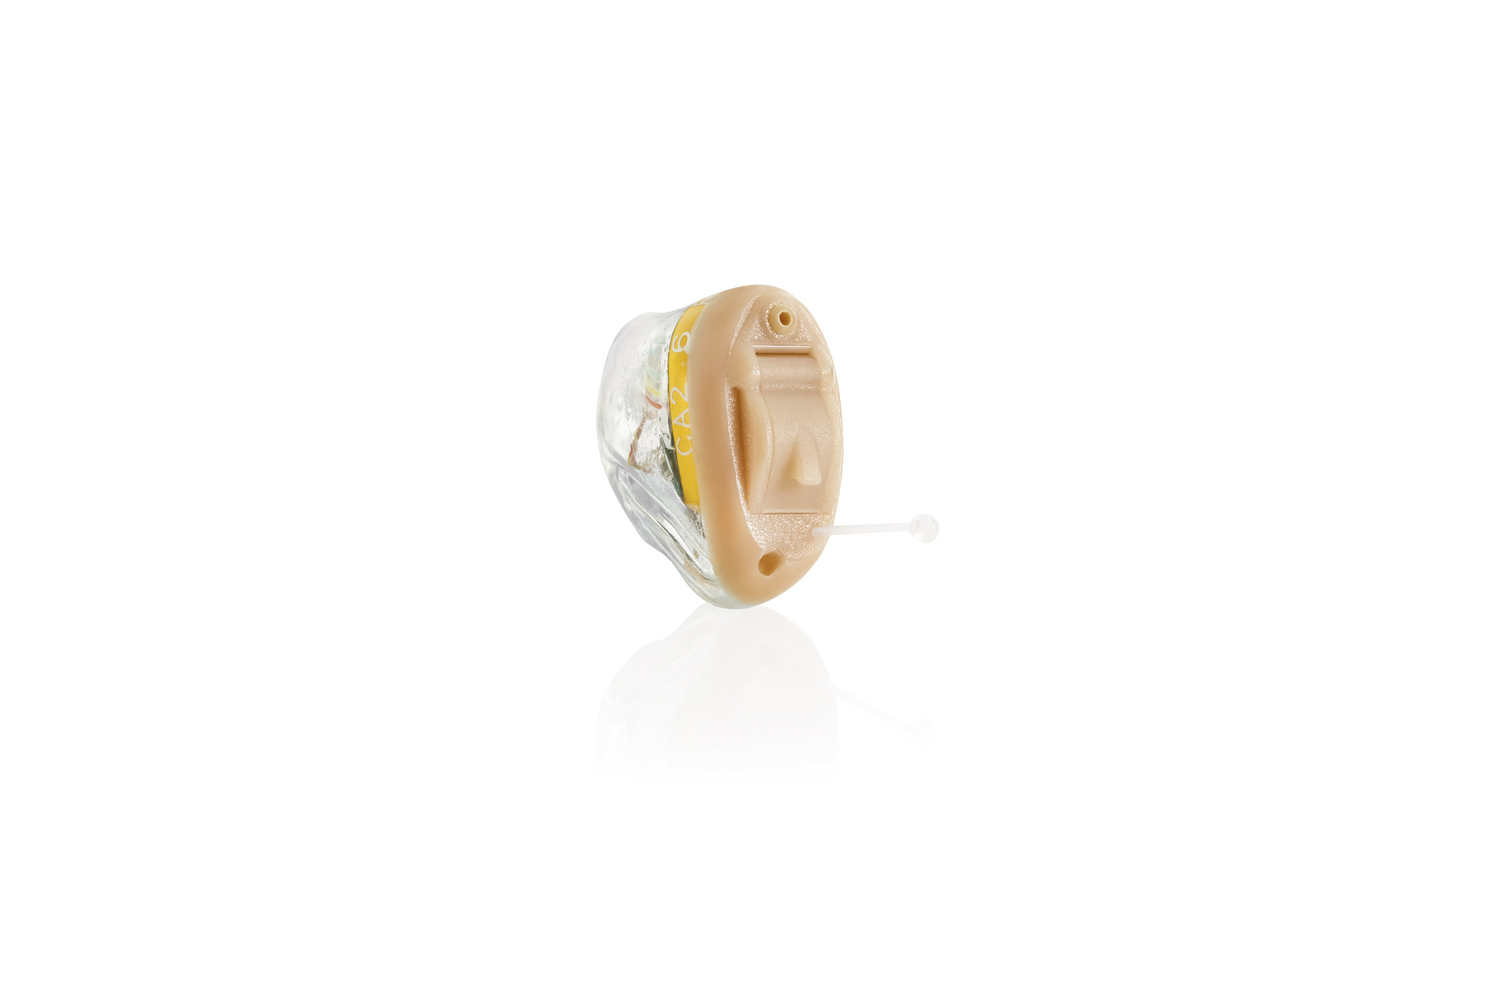 completely-in-canal-hearing-aid-asi